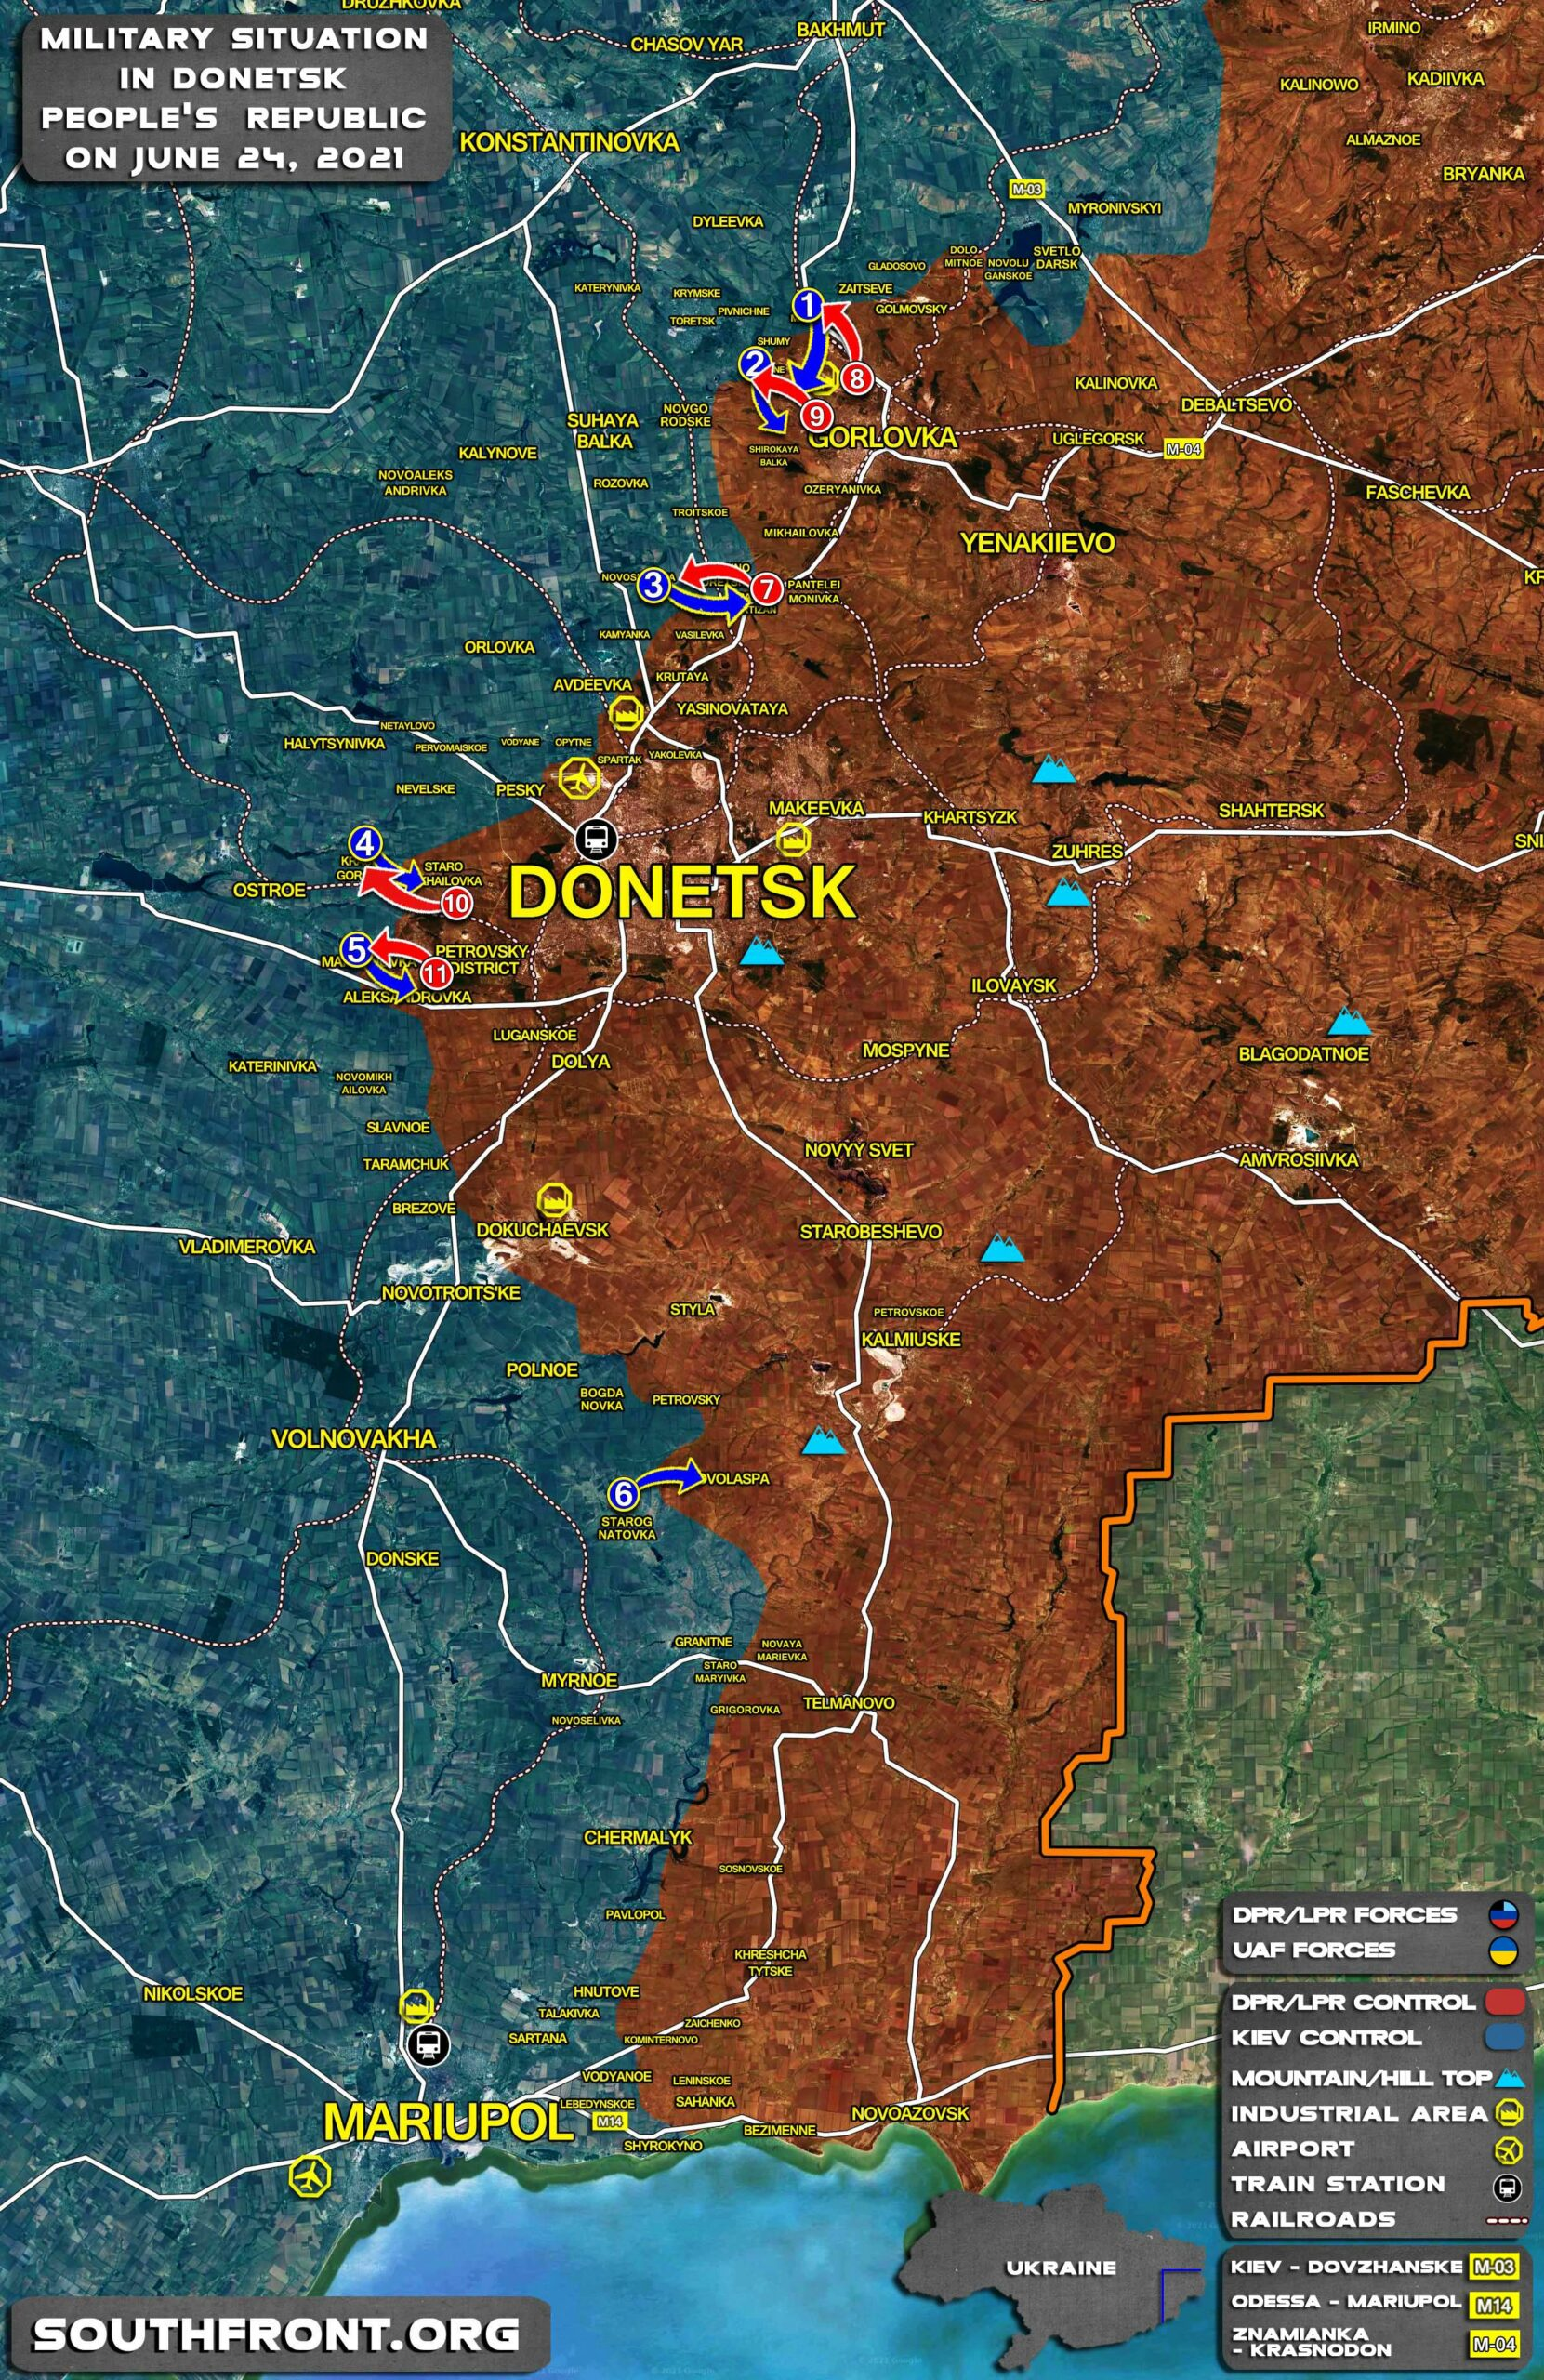 Military Situation In Donetsk People's Republic On June 24, 2021 (Map Update)